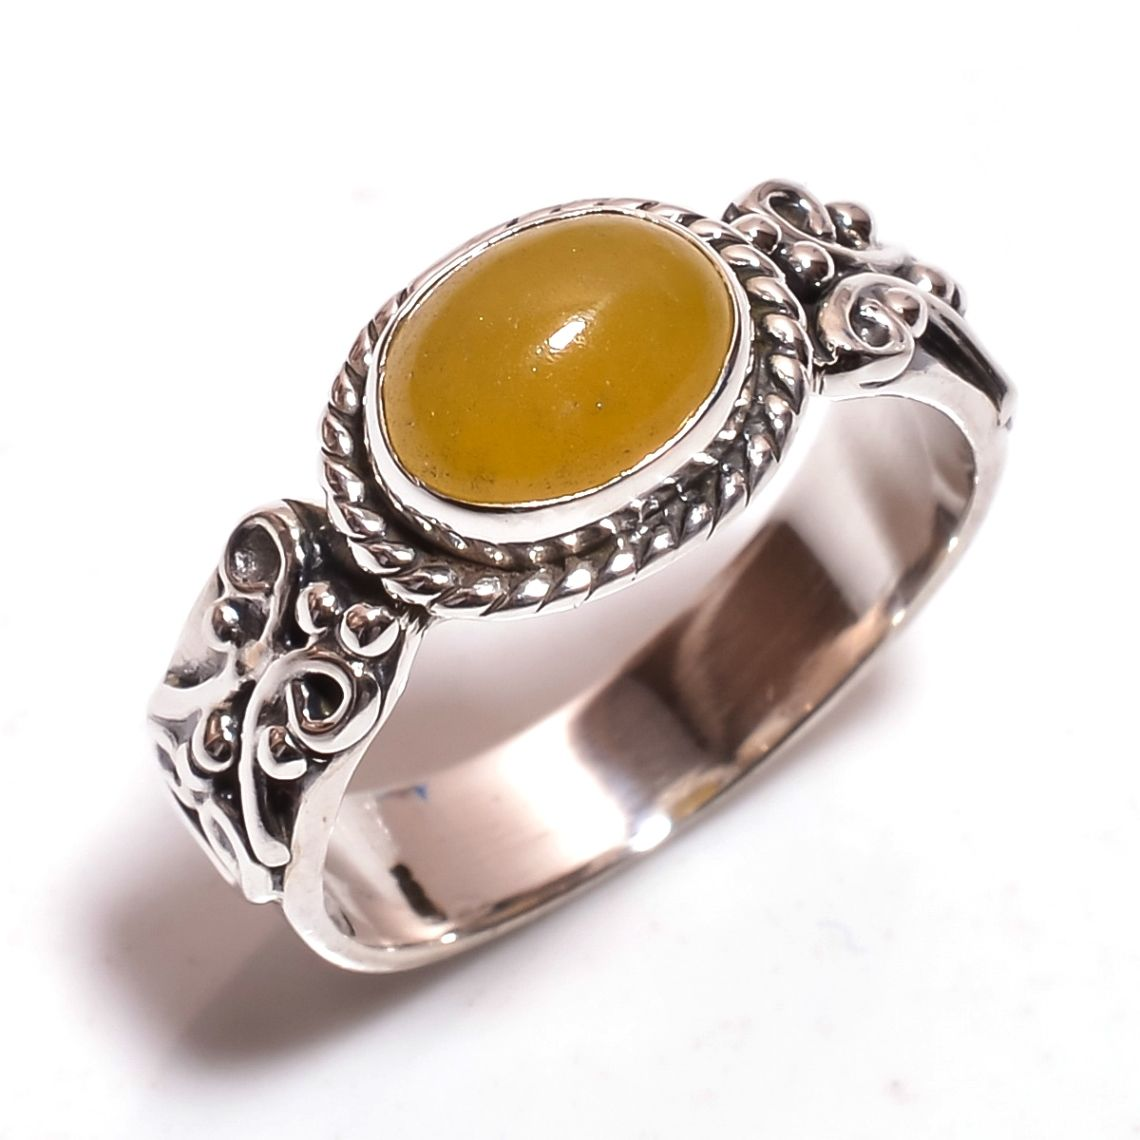 Yellow Jade Gemstone 925 Sterling Silver Ring Size 6.75